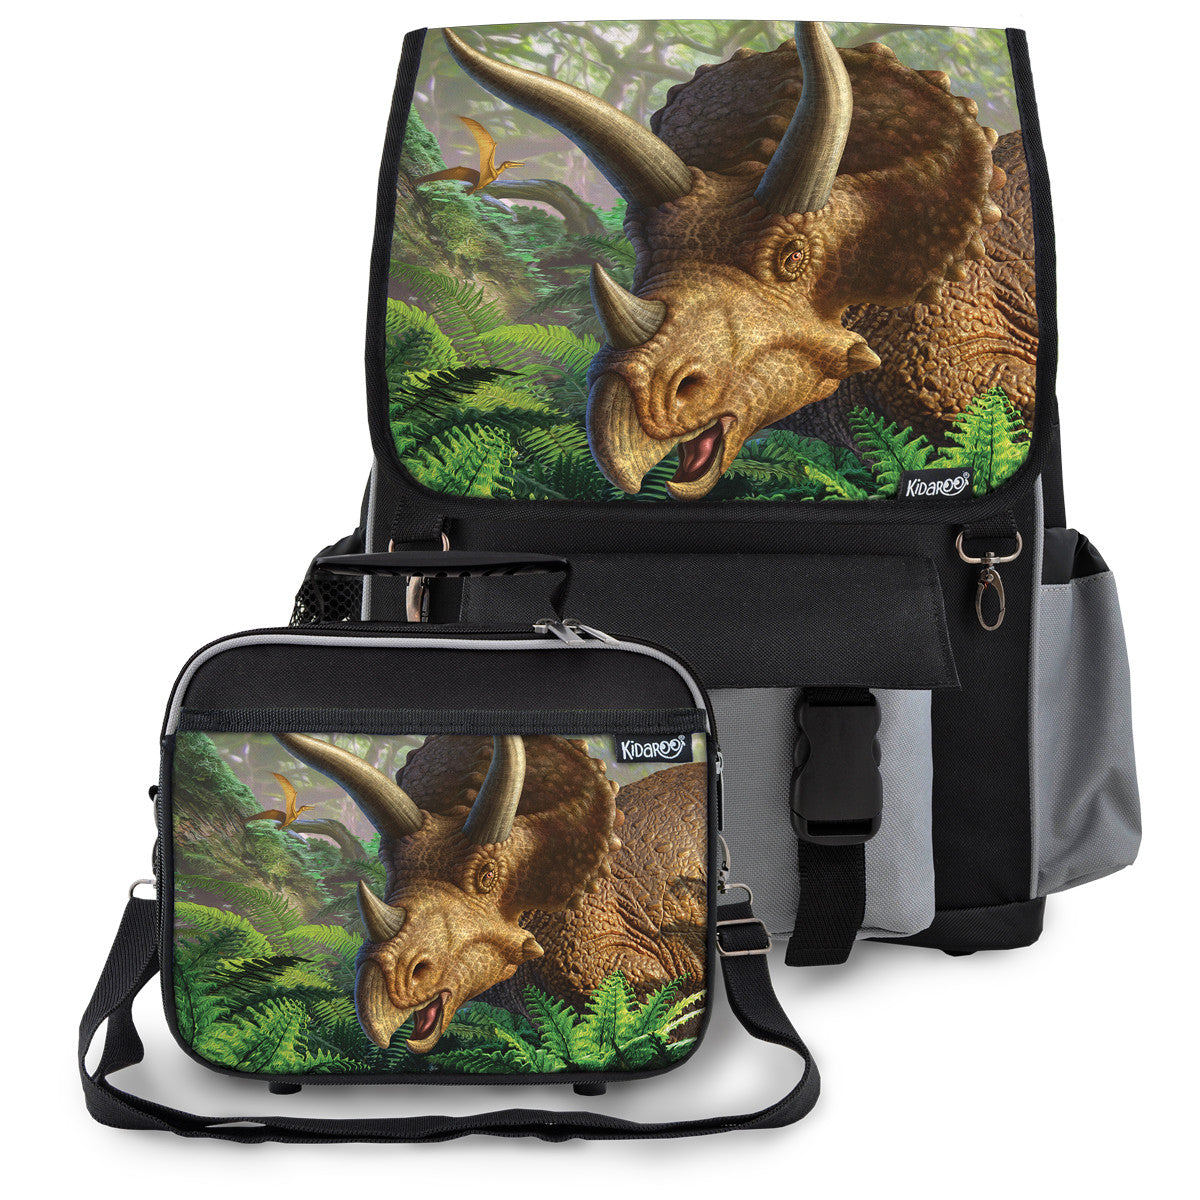 Kidaroo Black Triceratops Dinosaur School Backpack & Lunchbox Set for Boys, Girls, Kids